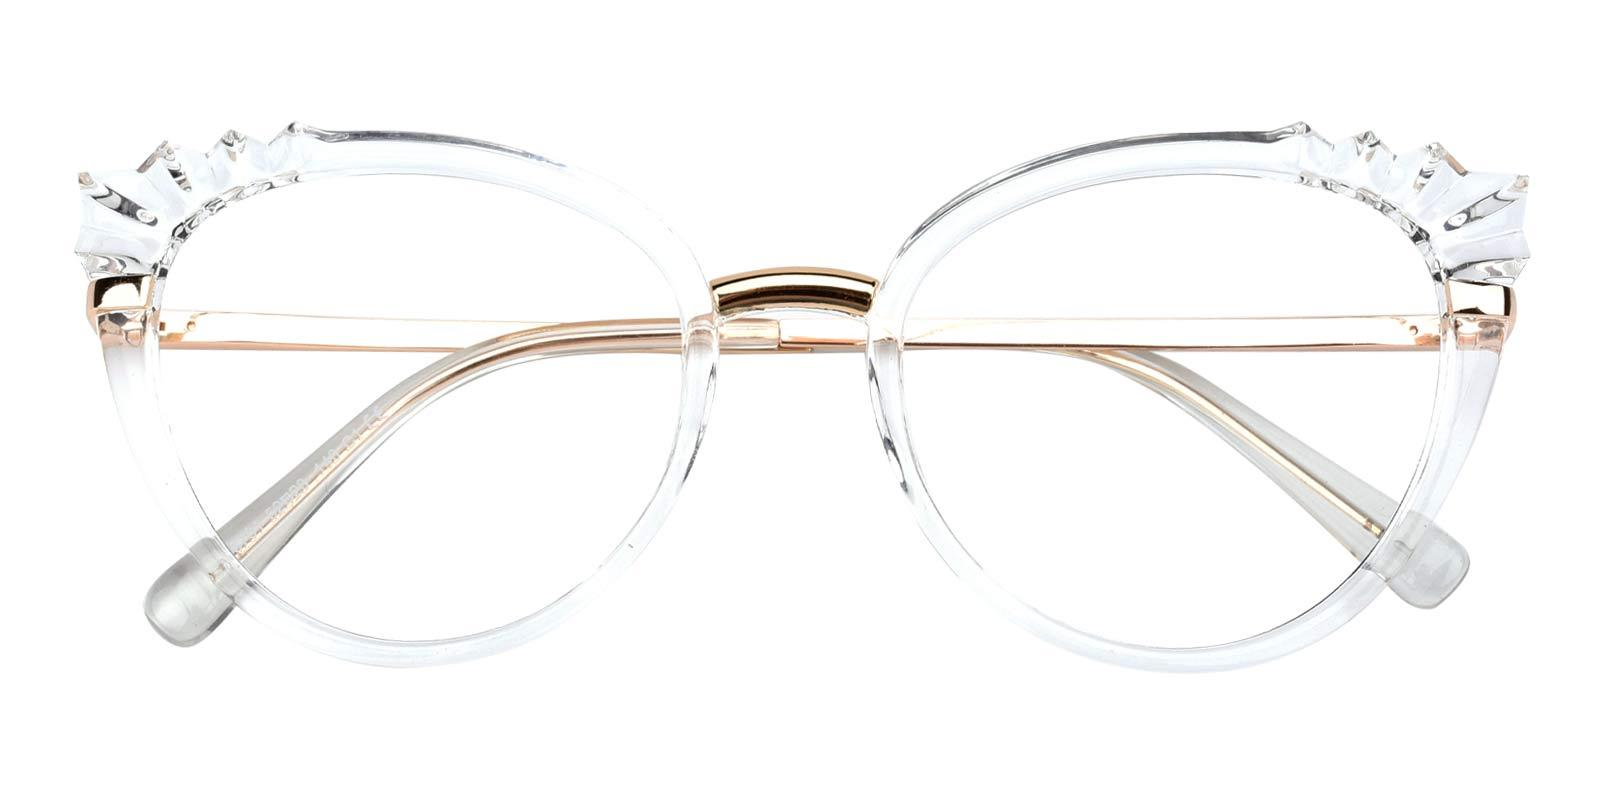 Damara-Translucent-Cat-Combination-Eyeglasses-detail